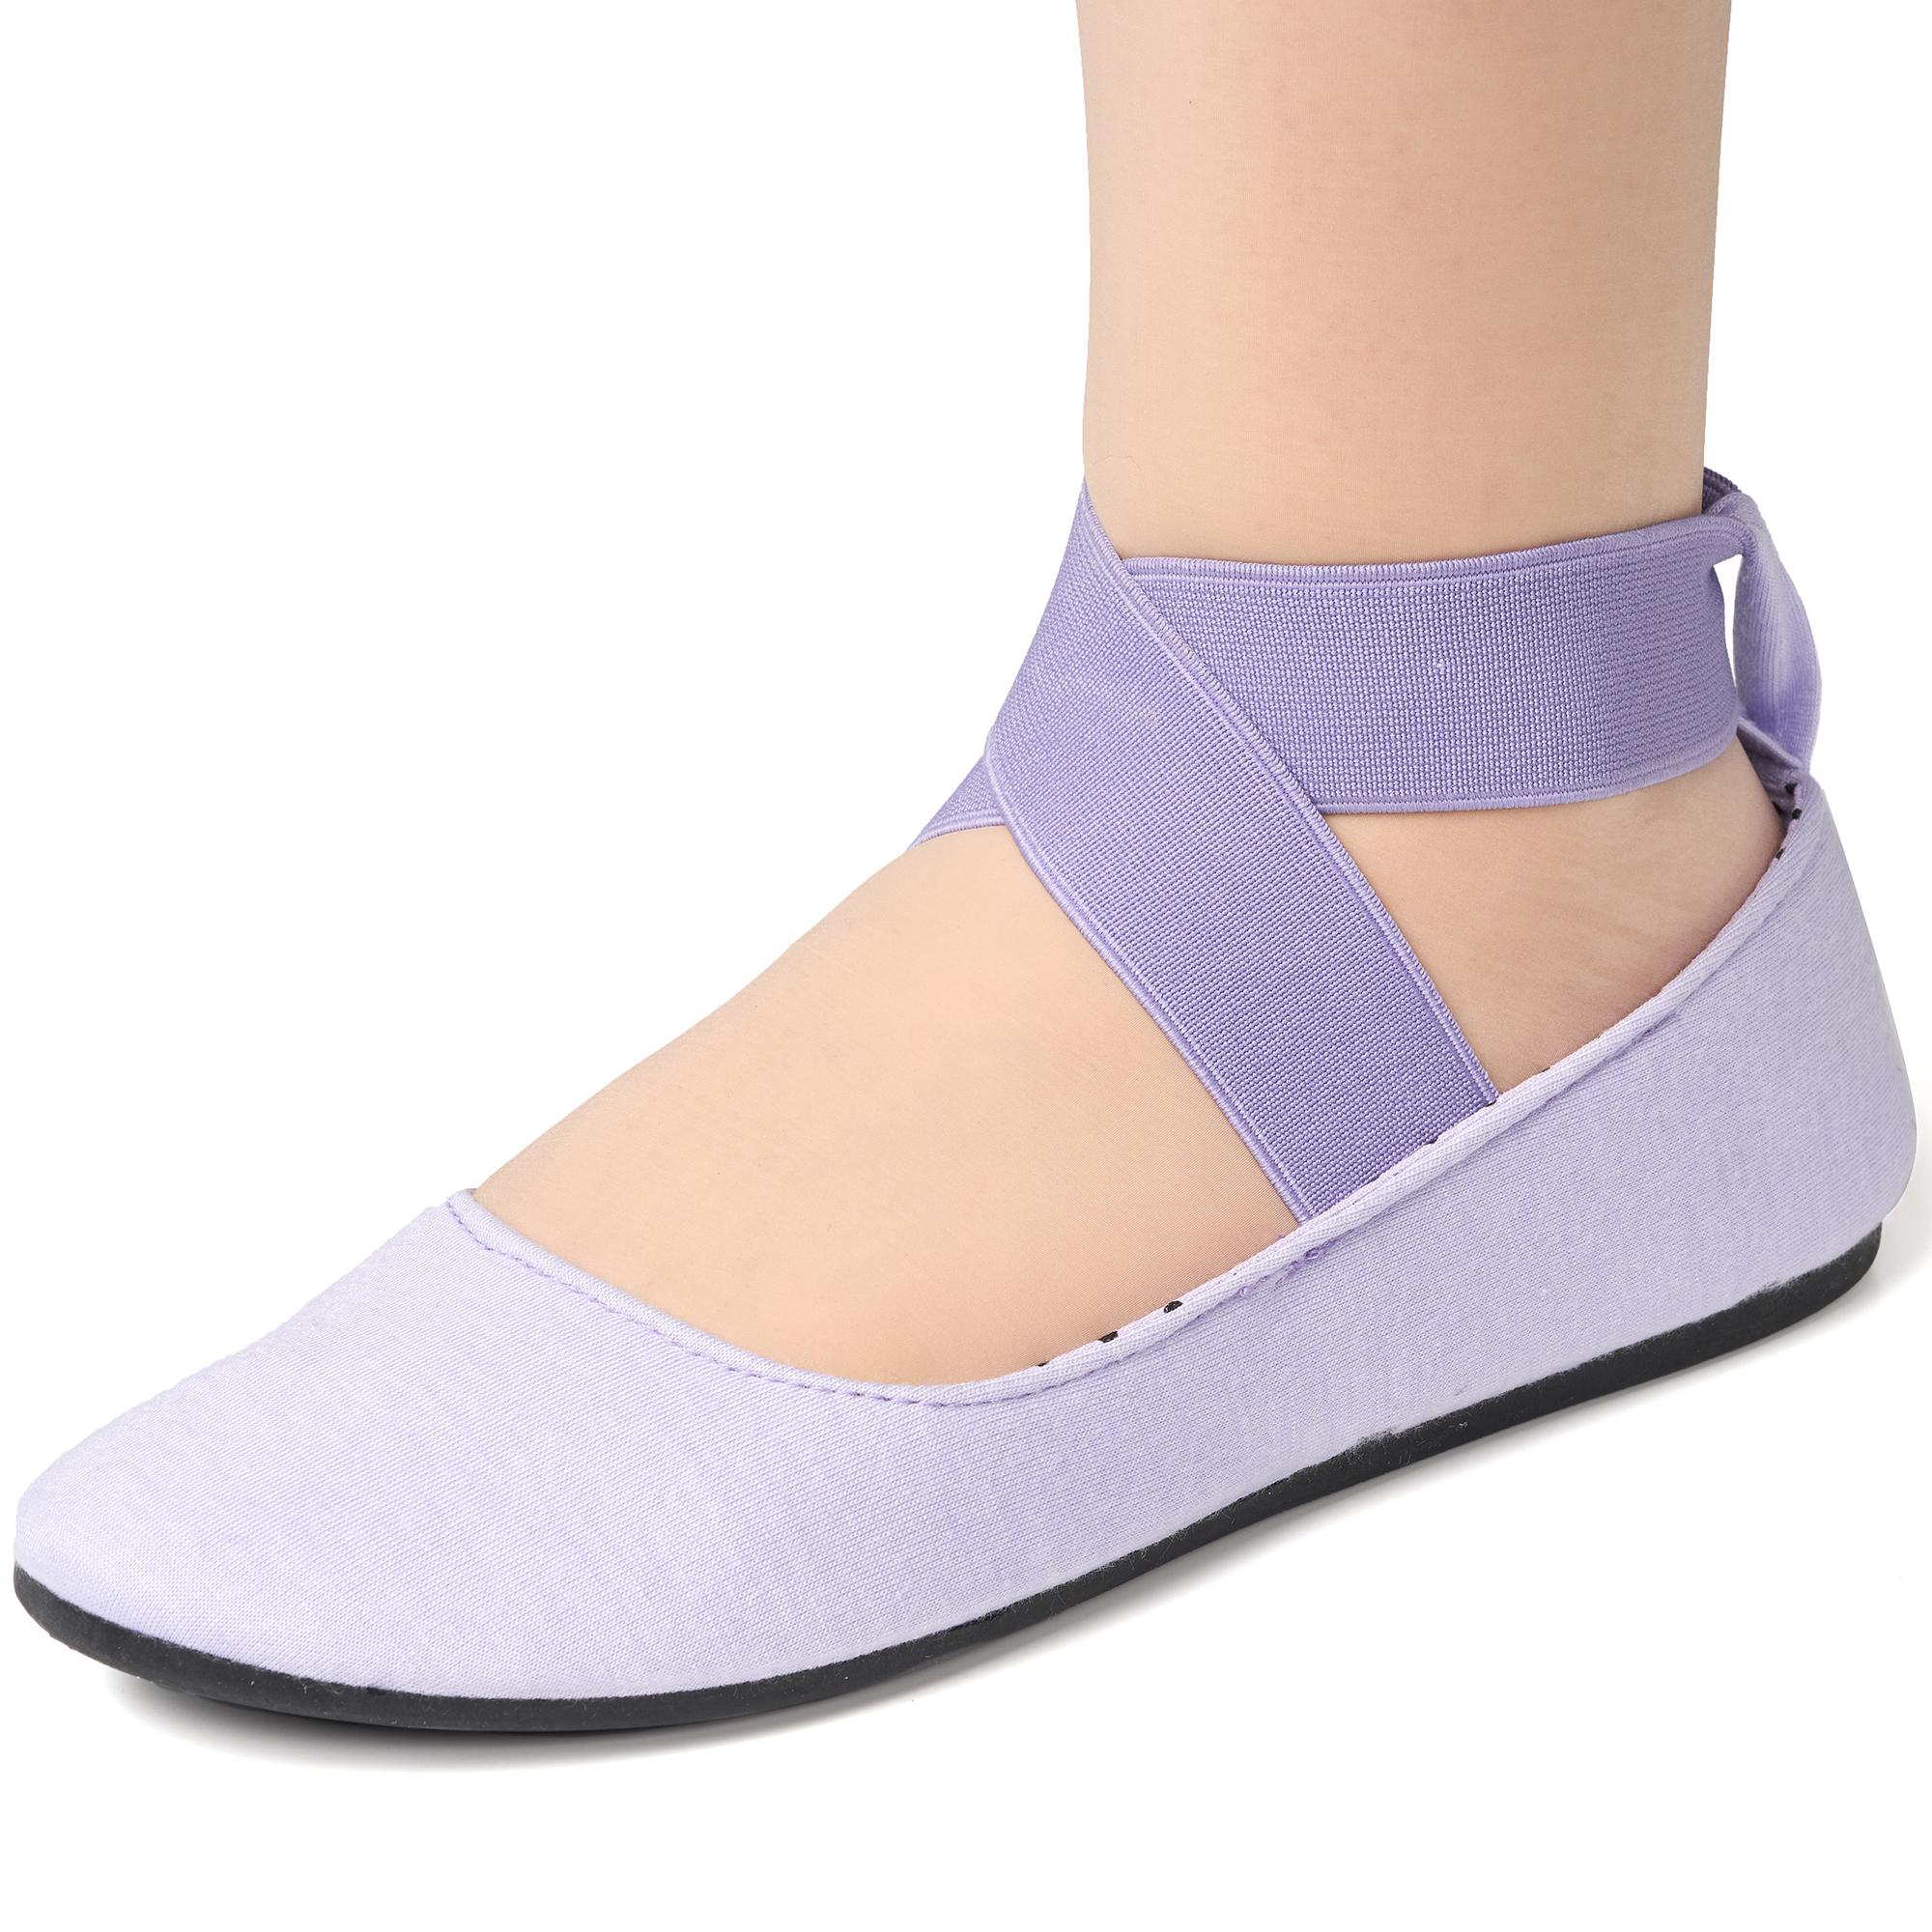 Alpine-Swiss-Peony-Womens-Ballet-Flats-Elastic-Ankle-Strap-Shoes-Slip-On-Loafers thumbnail 37